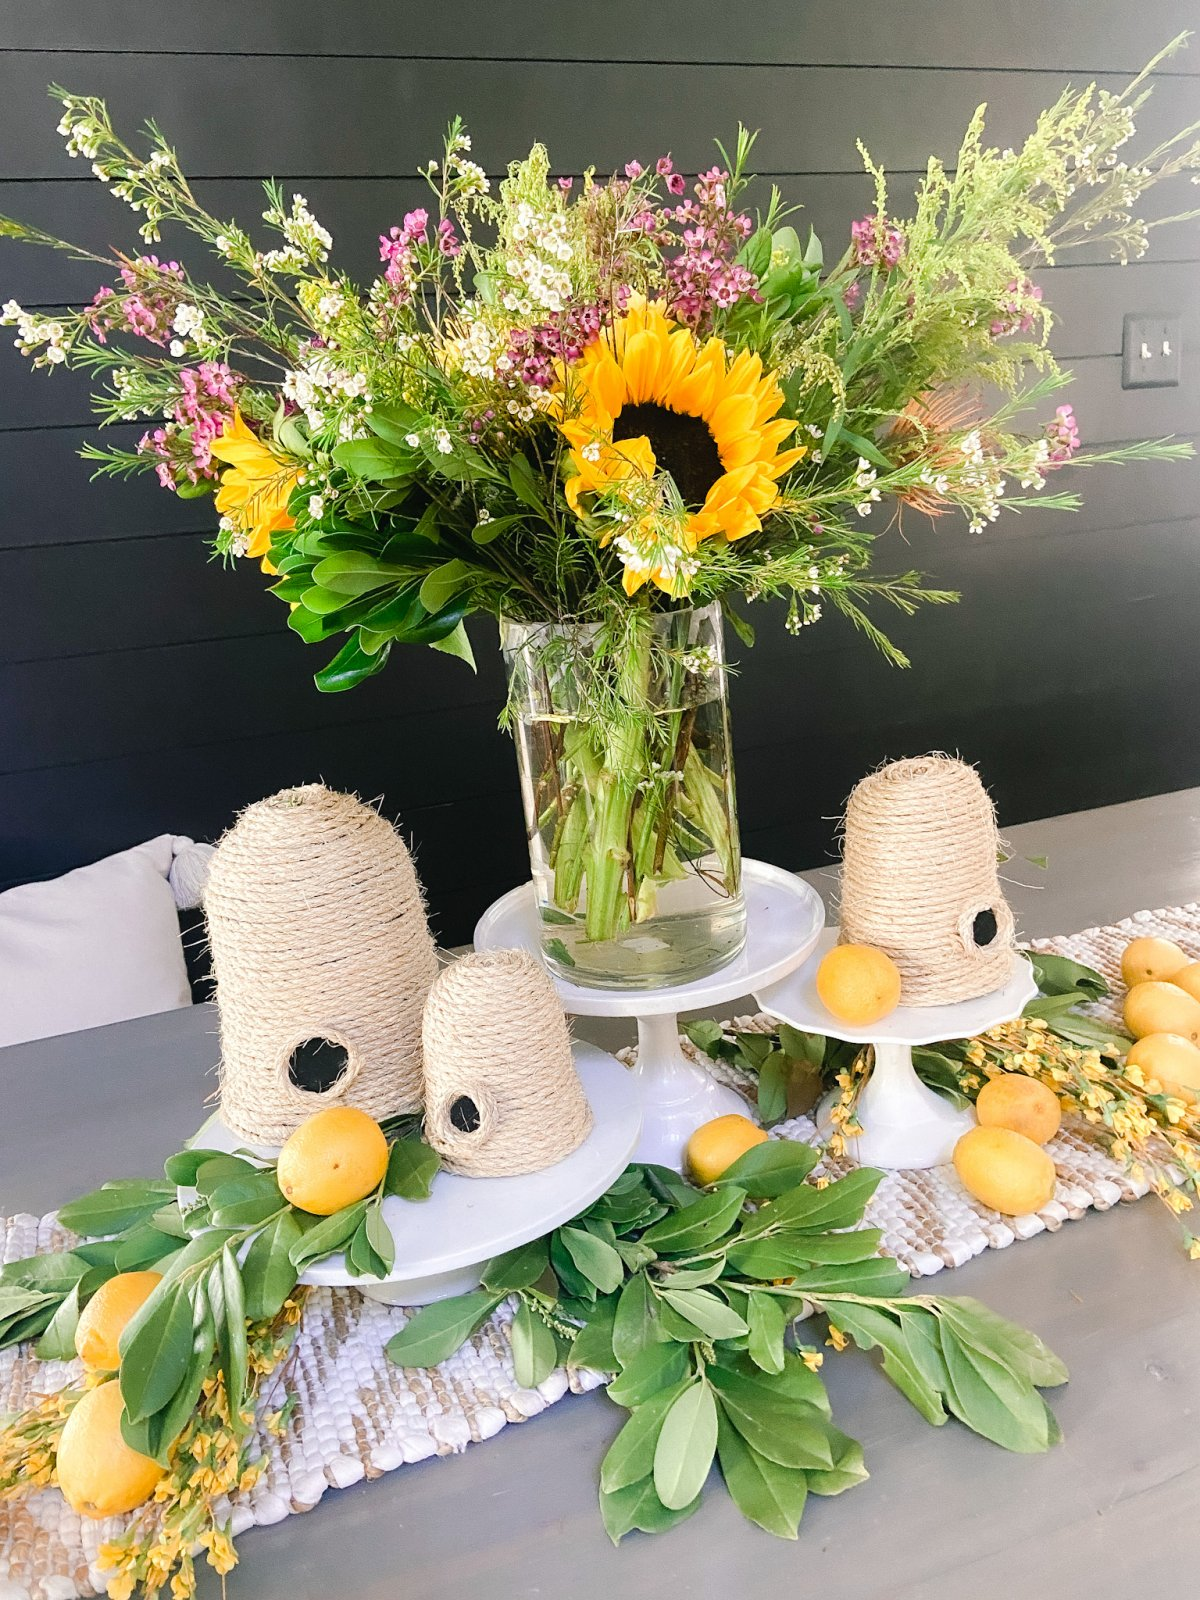 How to Arrange Summer Grocery Store Flowers. Grab an inexpensive bouquet at the store and transform it into a show stopping centerpiece.